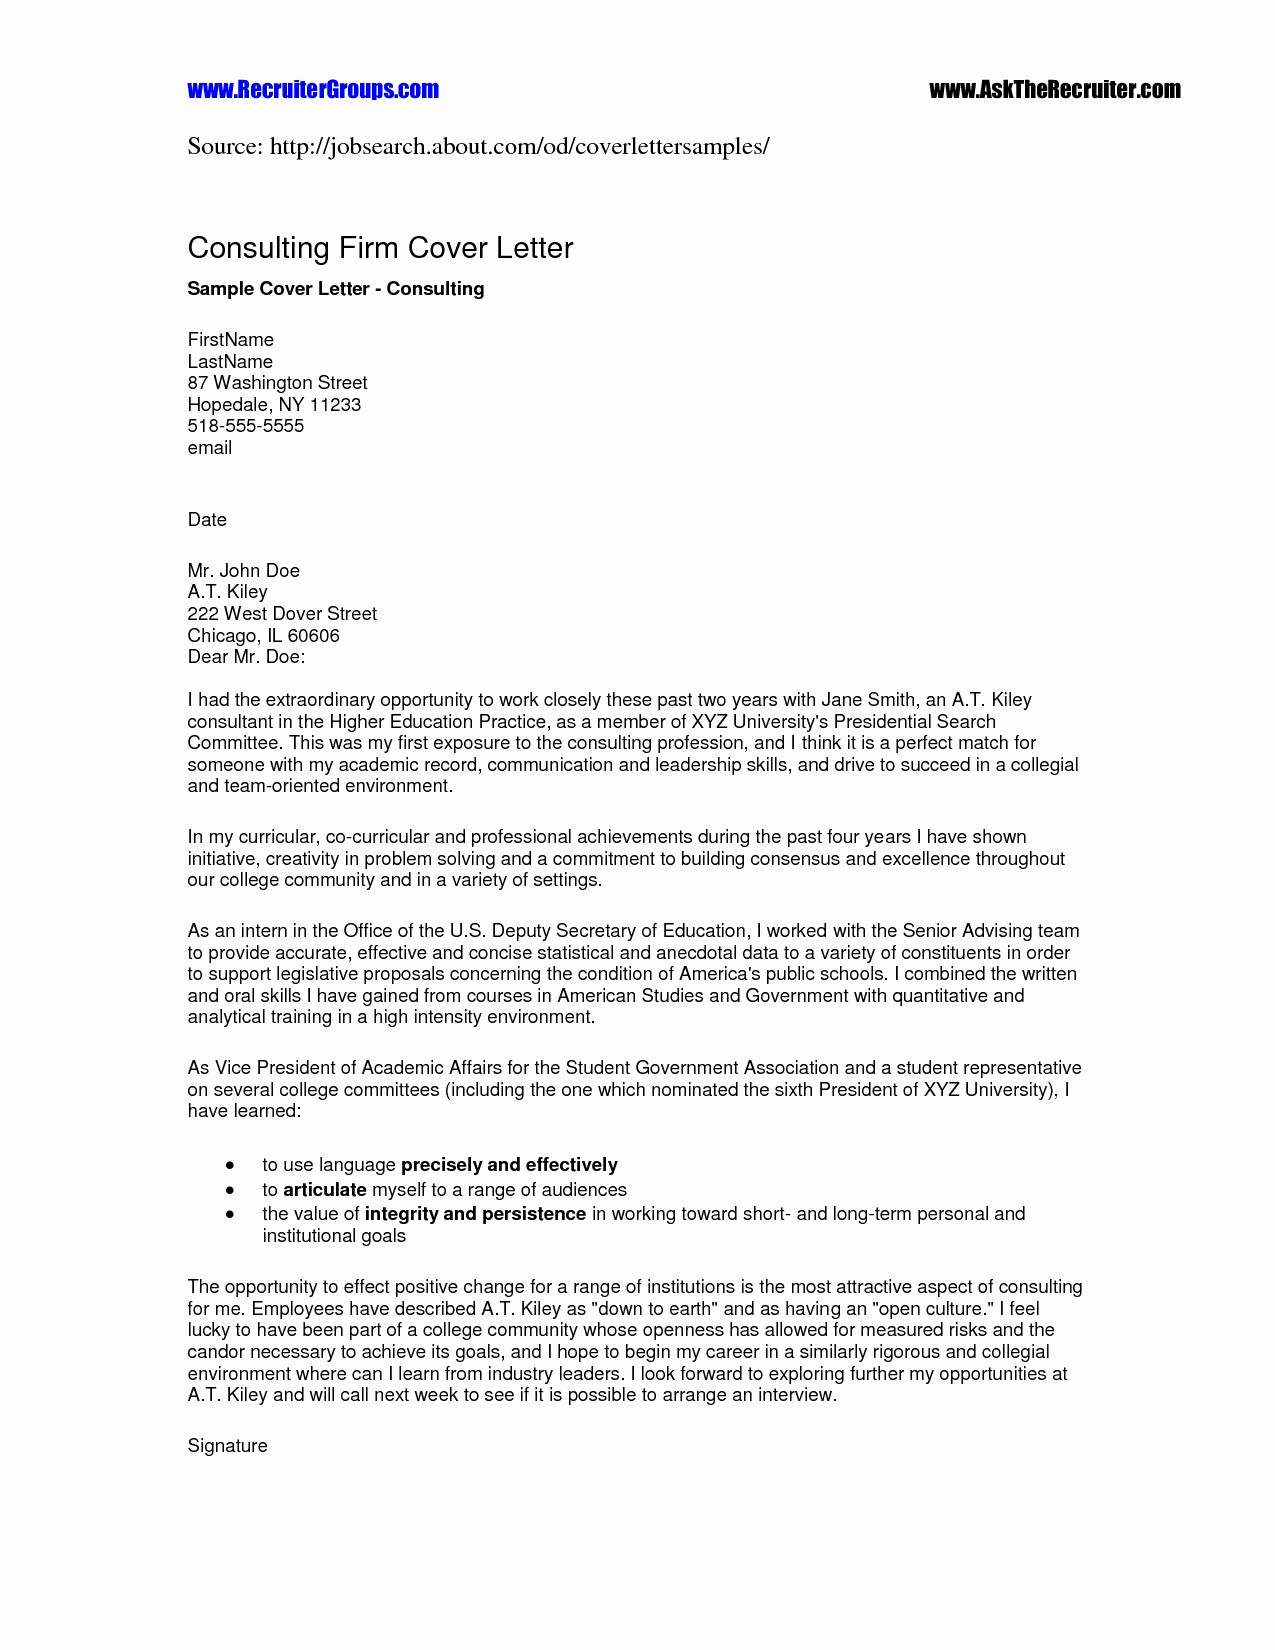 Job Offer Letter Template Word Collection | Letter Template ...